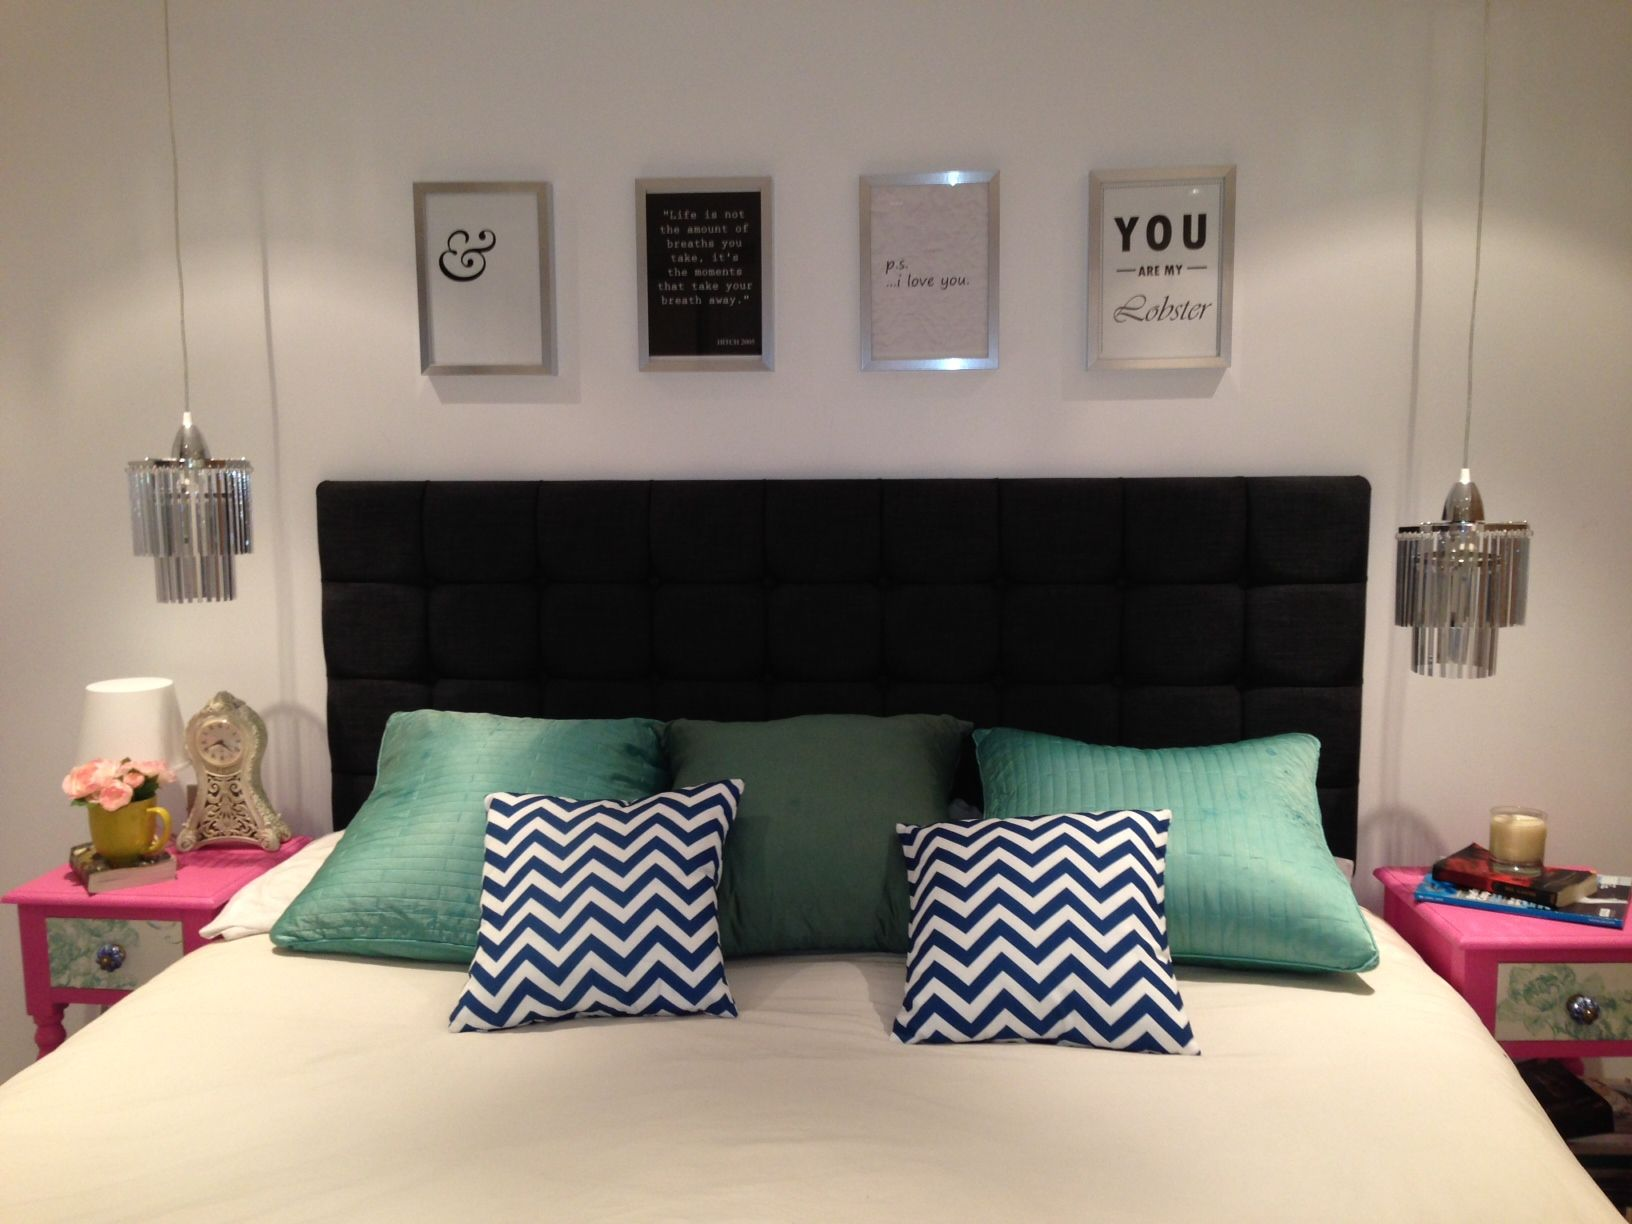 Bedroom update homemade wall art above bed blue chevron cushions